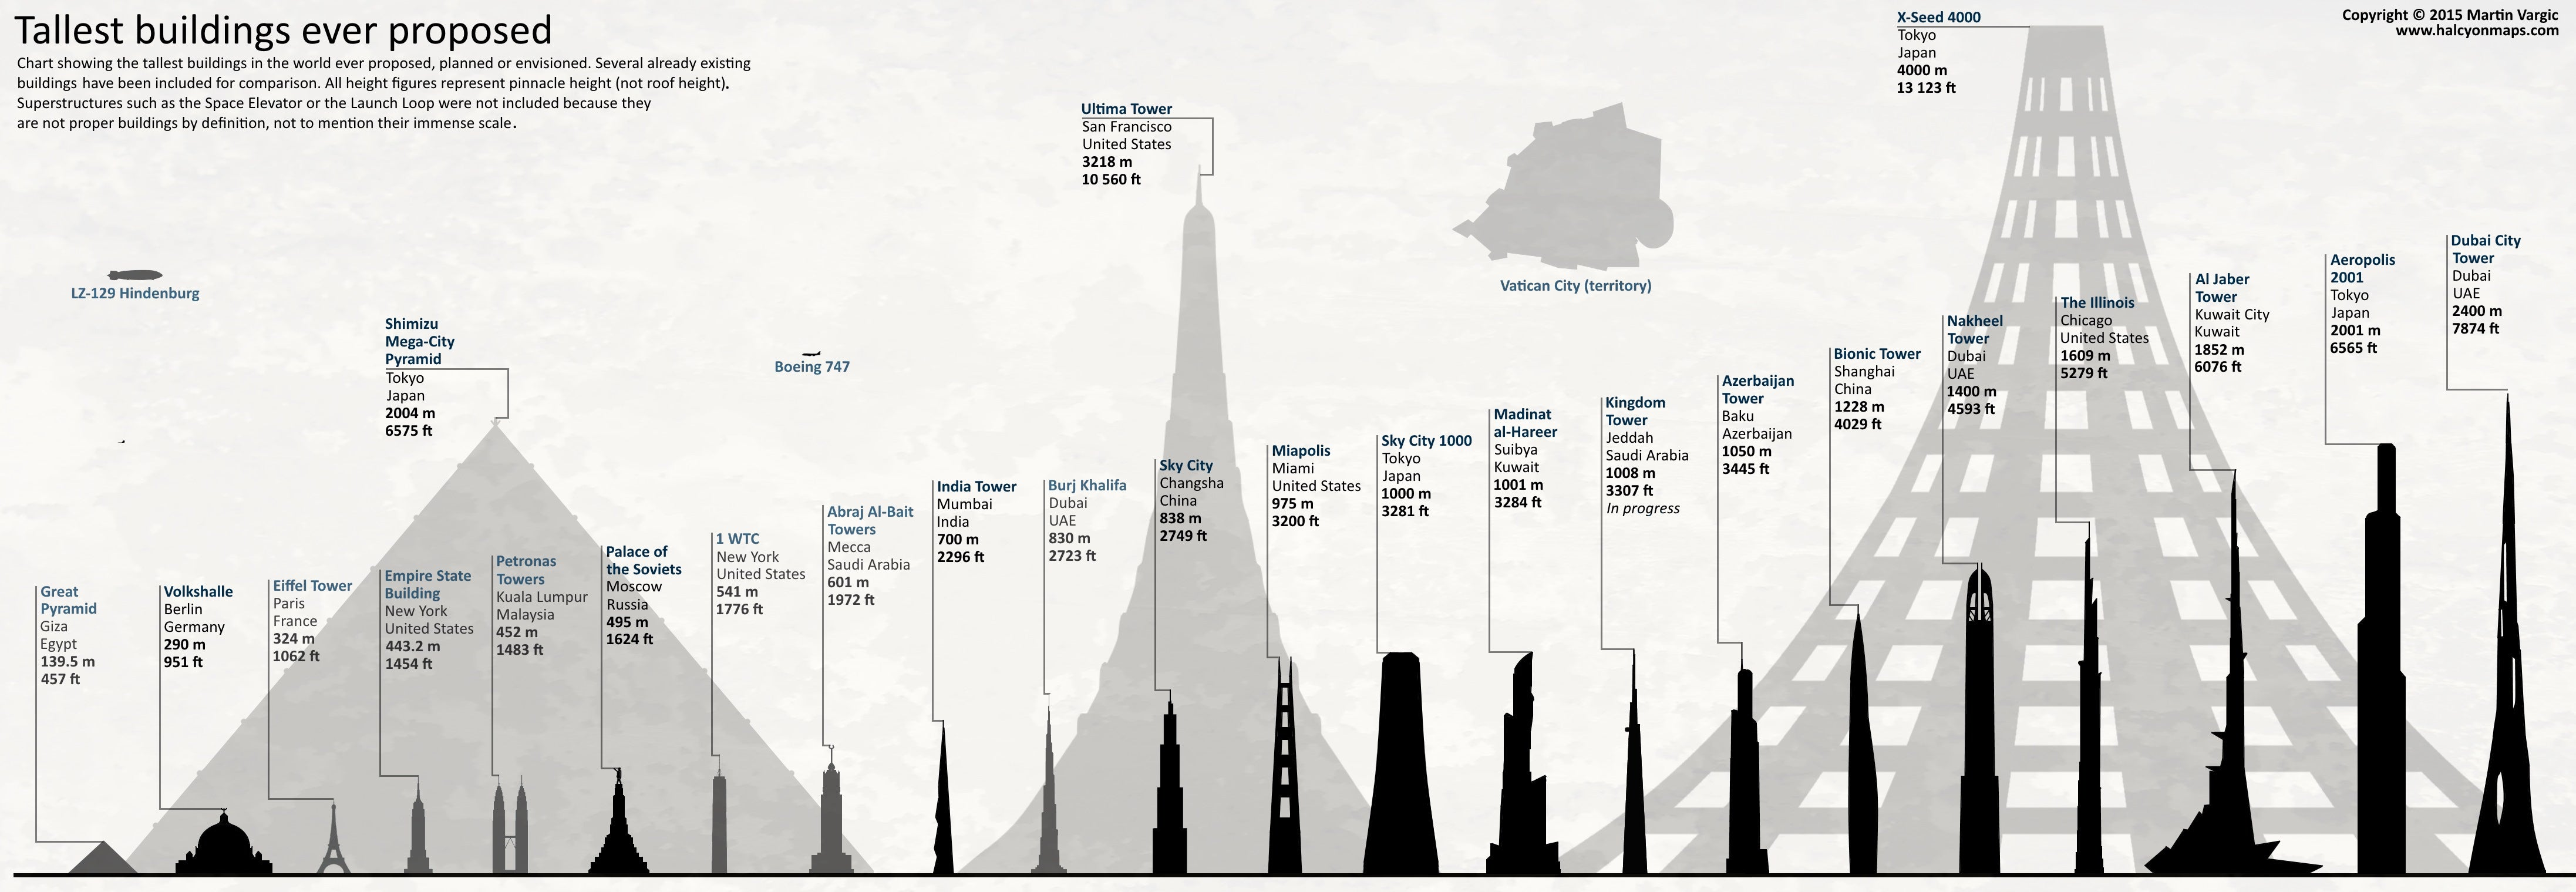 Neat chart shows the tallest planned buildings in history